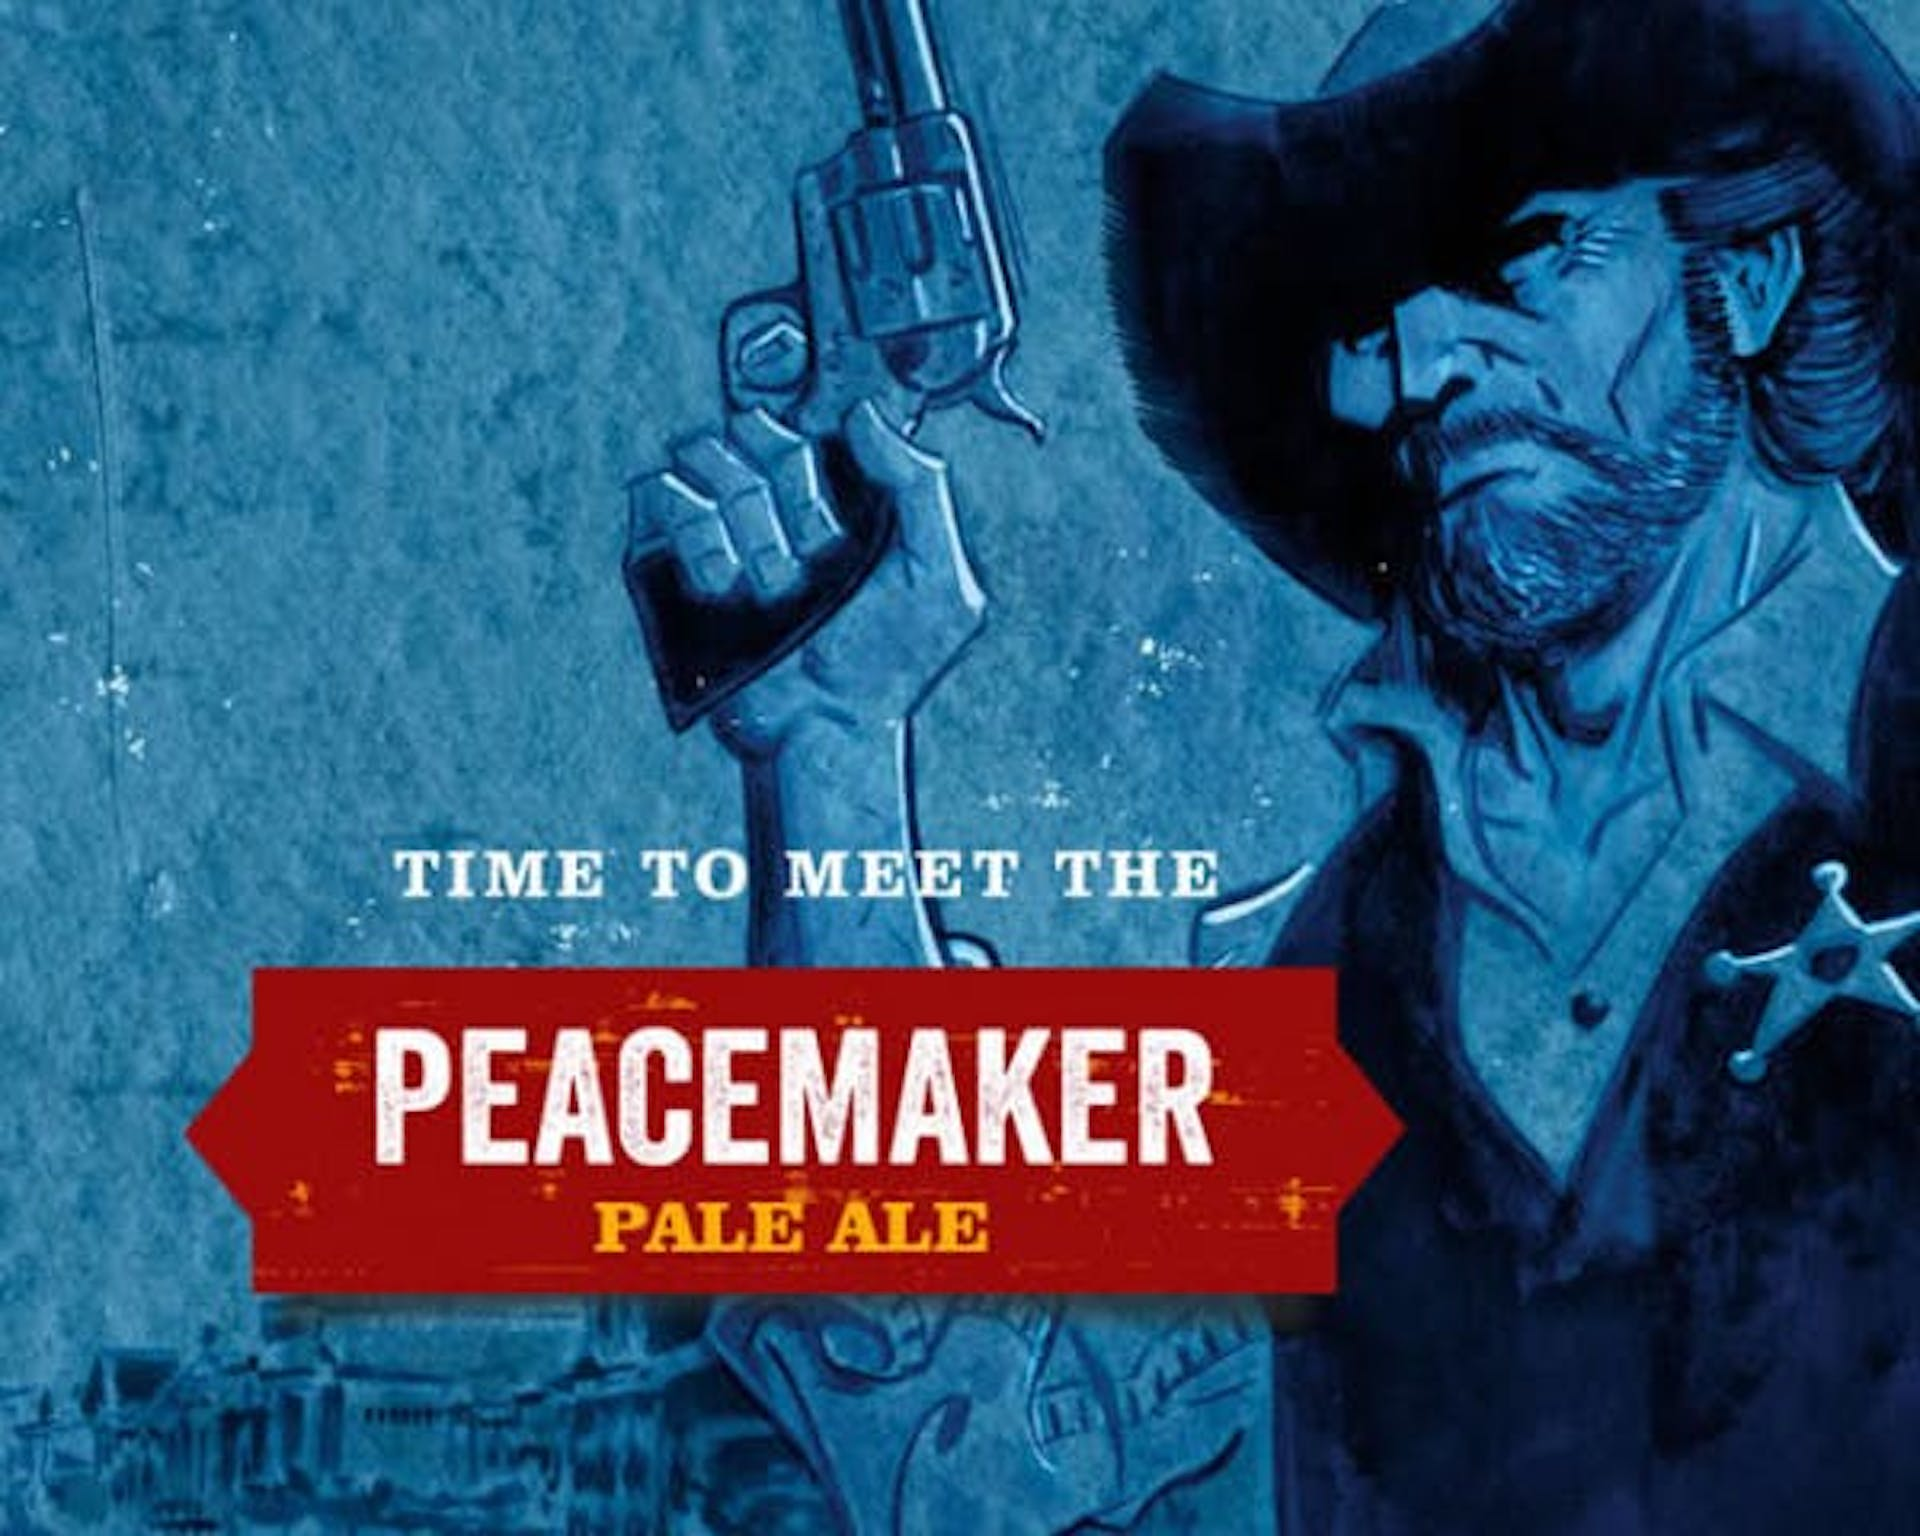 peacemaker_reveal-76209_600x4801